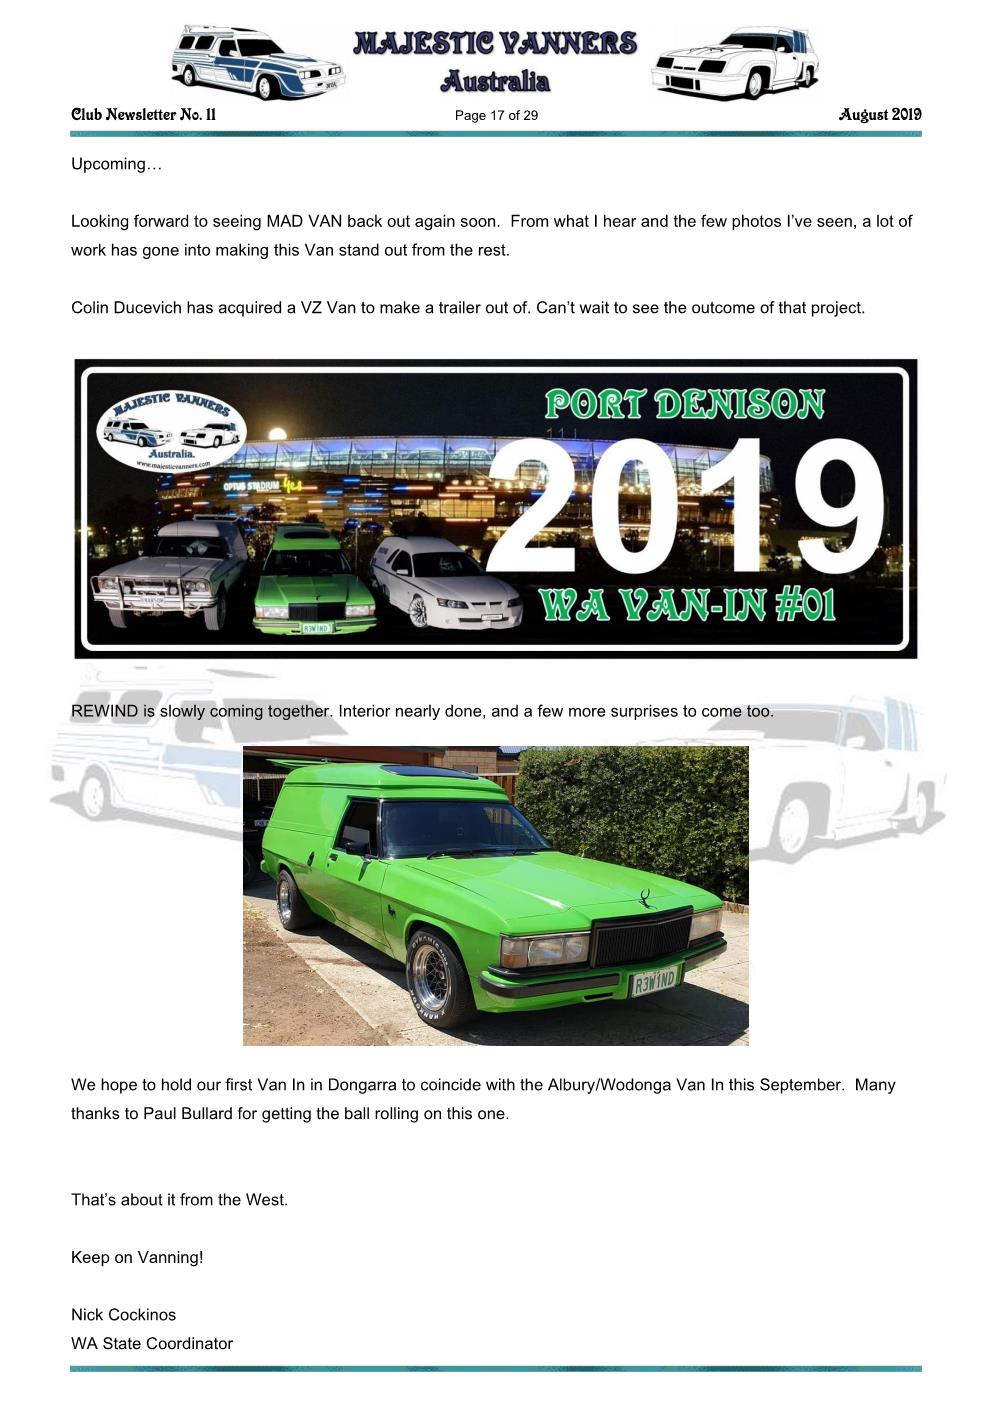 MAJESTIC VANNERS Newsletter Issue No: 11 August 2019 Mv_new54